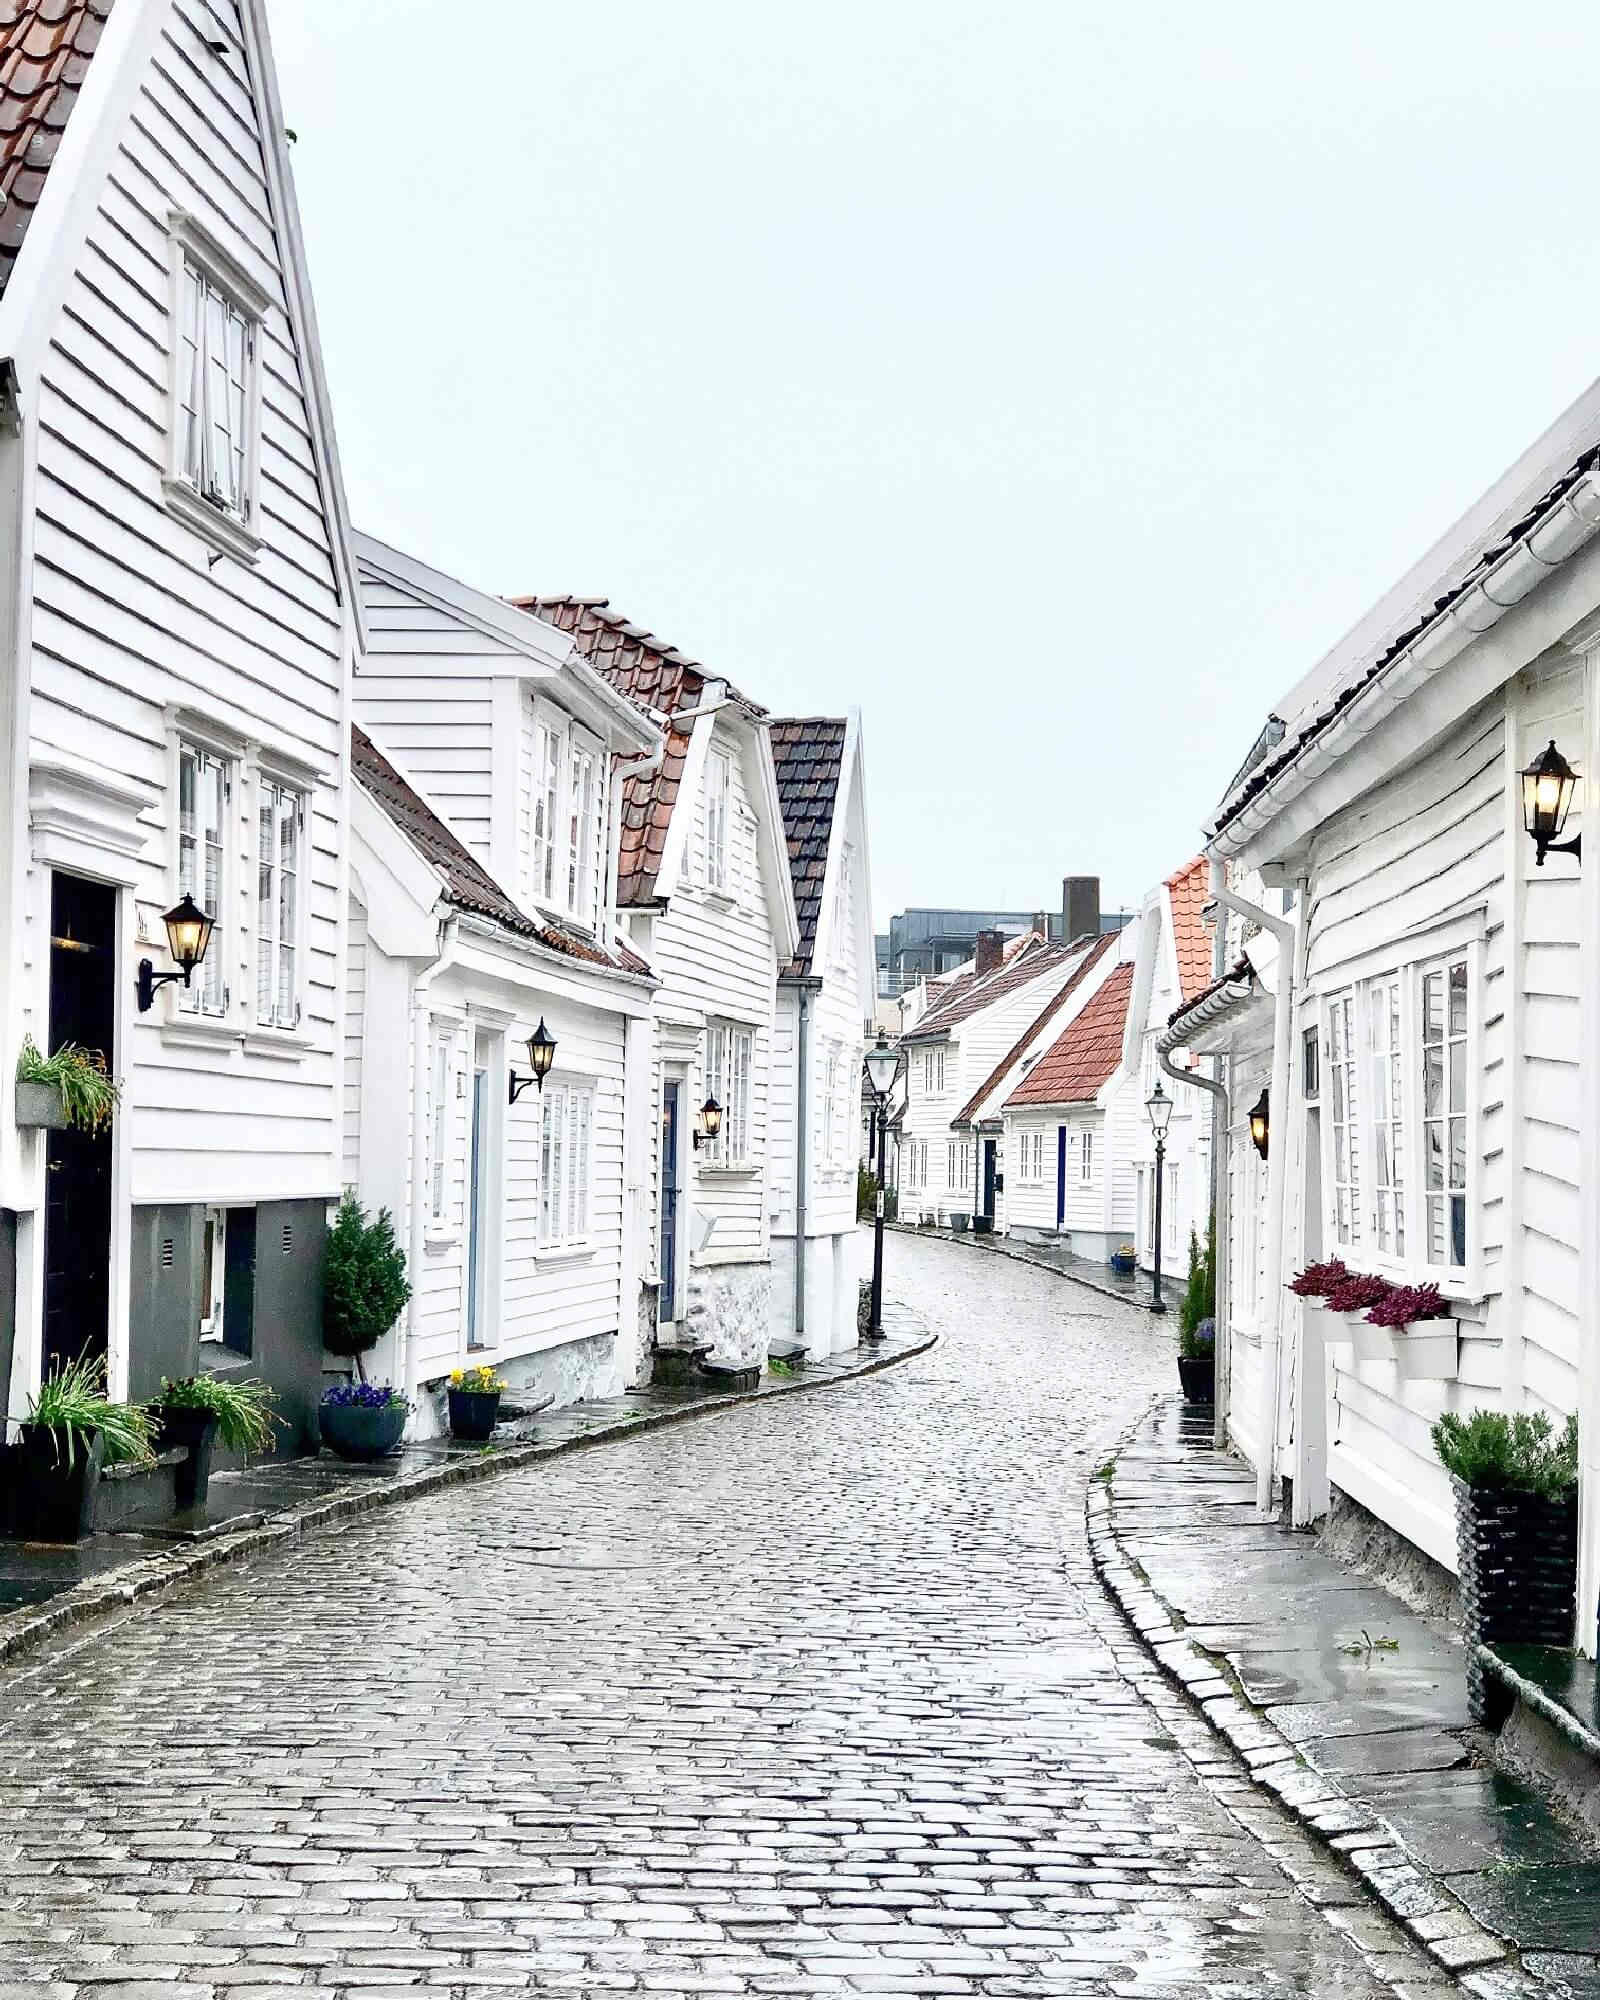 Stavanger town streets and buildings